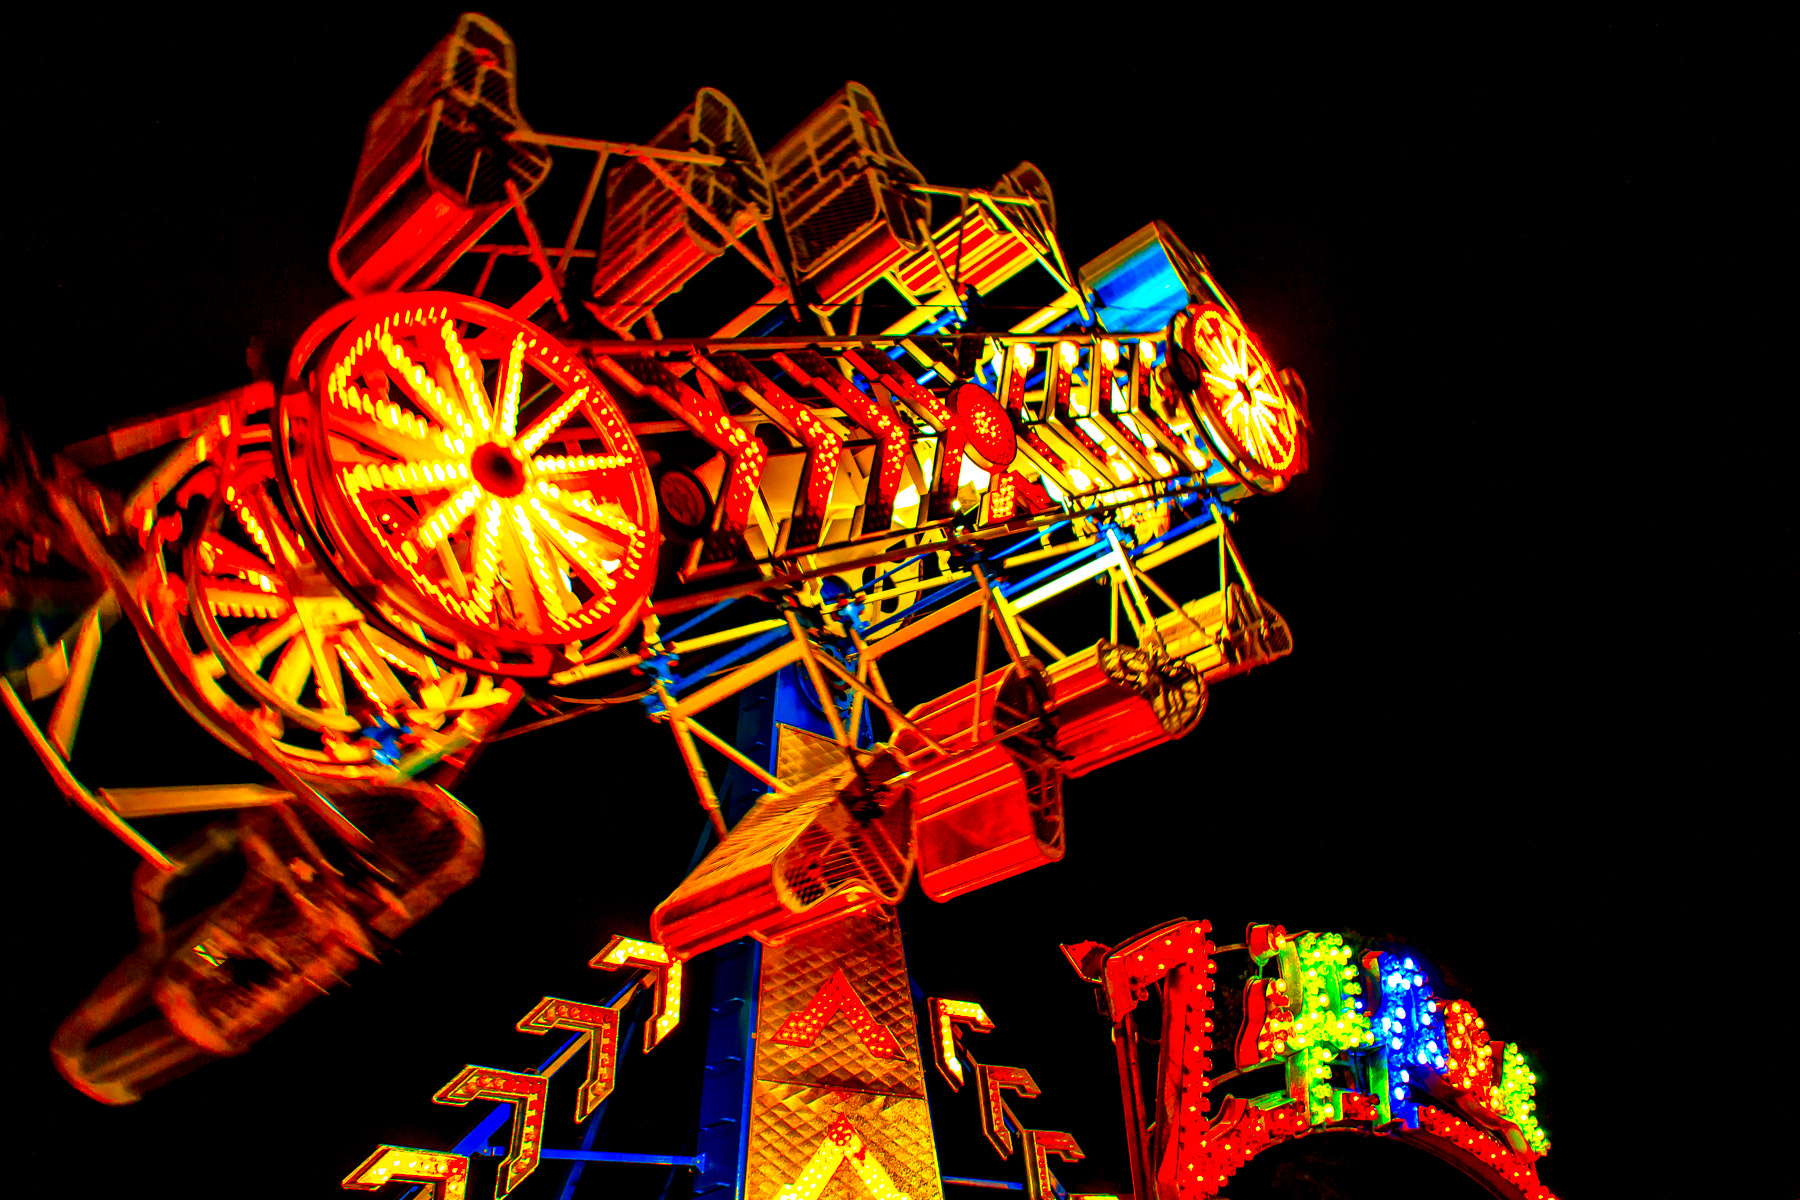 A night shot of a Zipper thrill ride at the carnival part of Addison Oktoberfest, Addison, Texas.